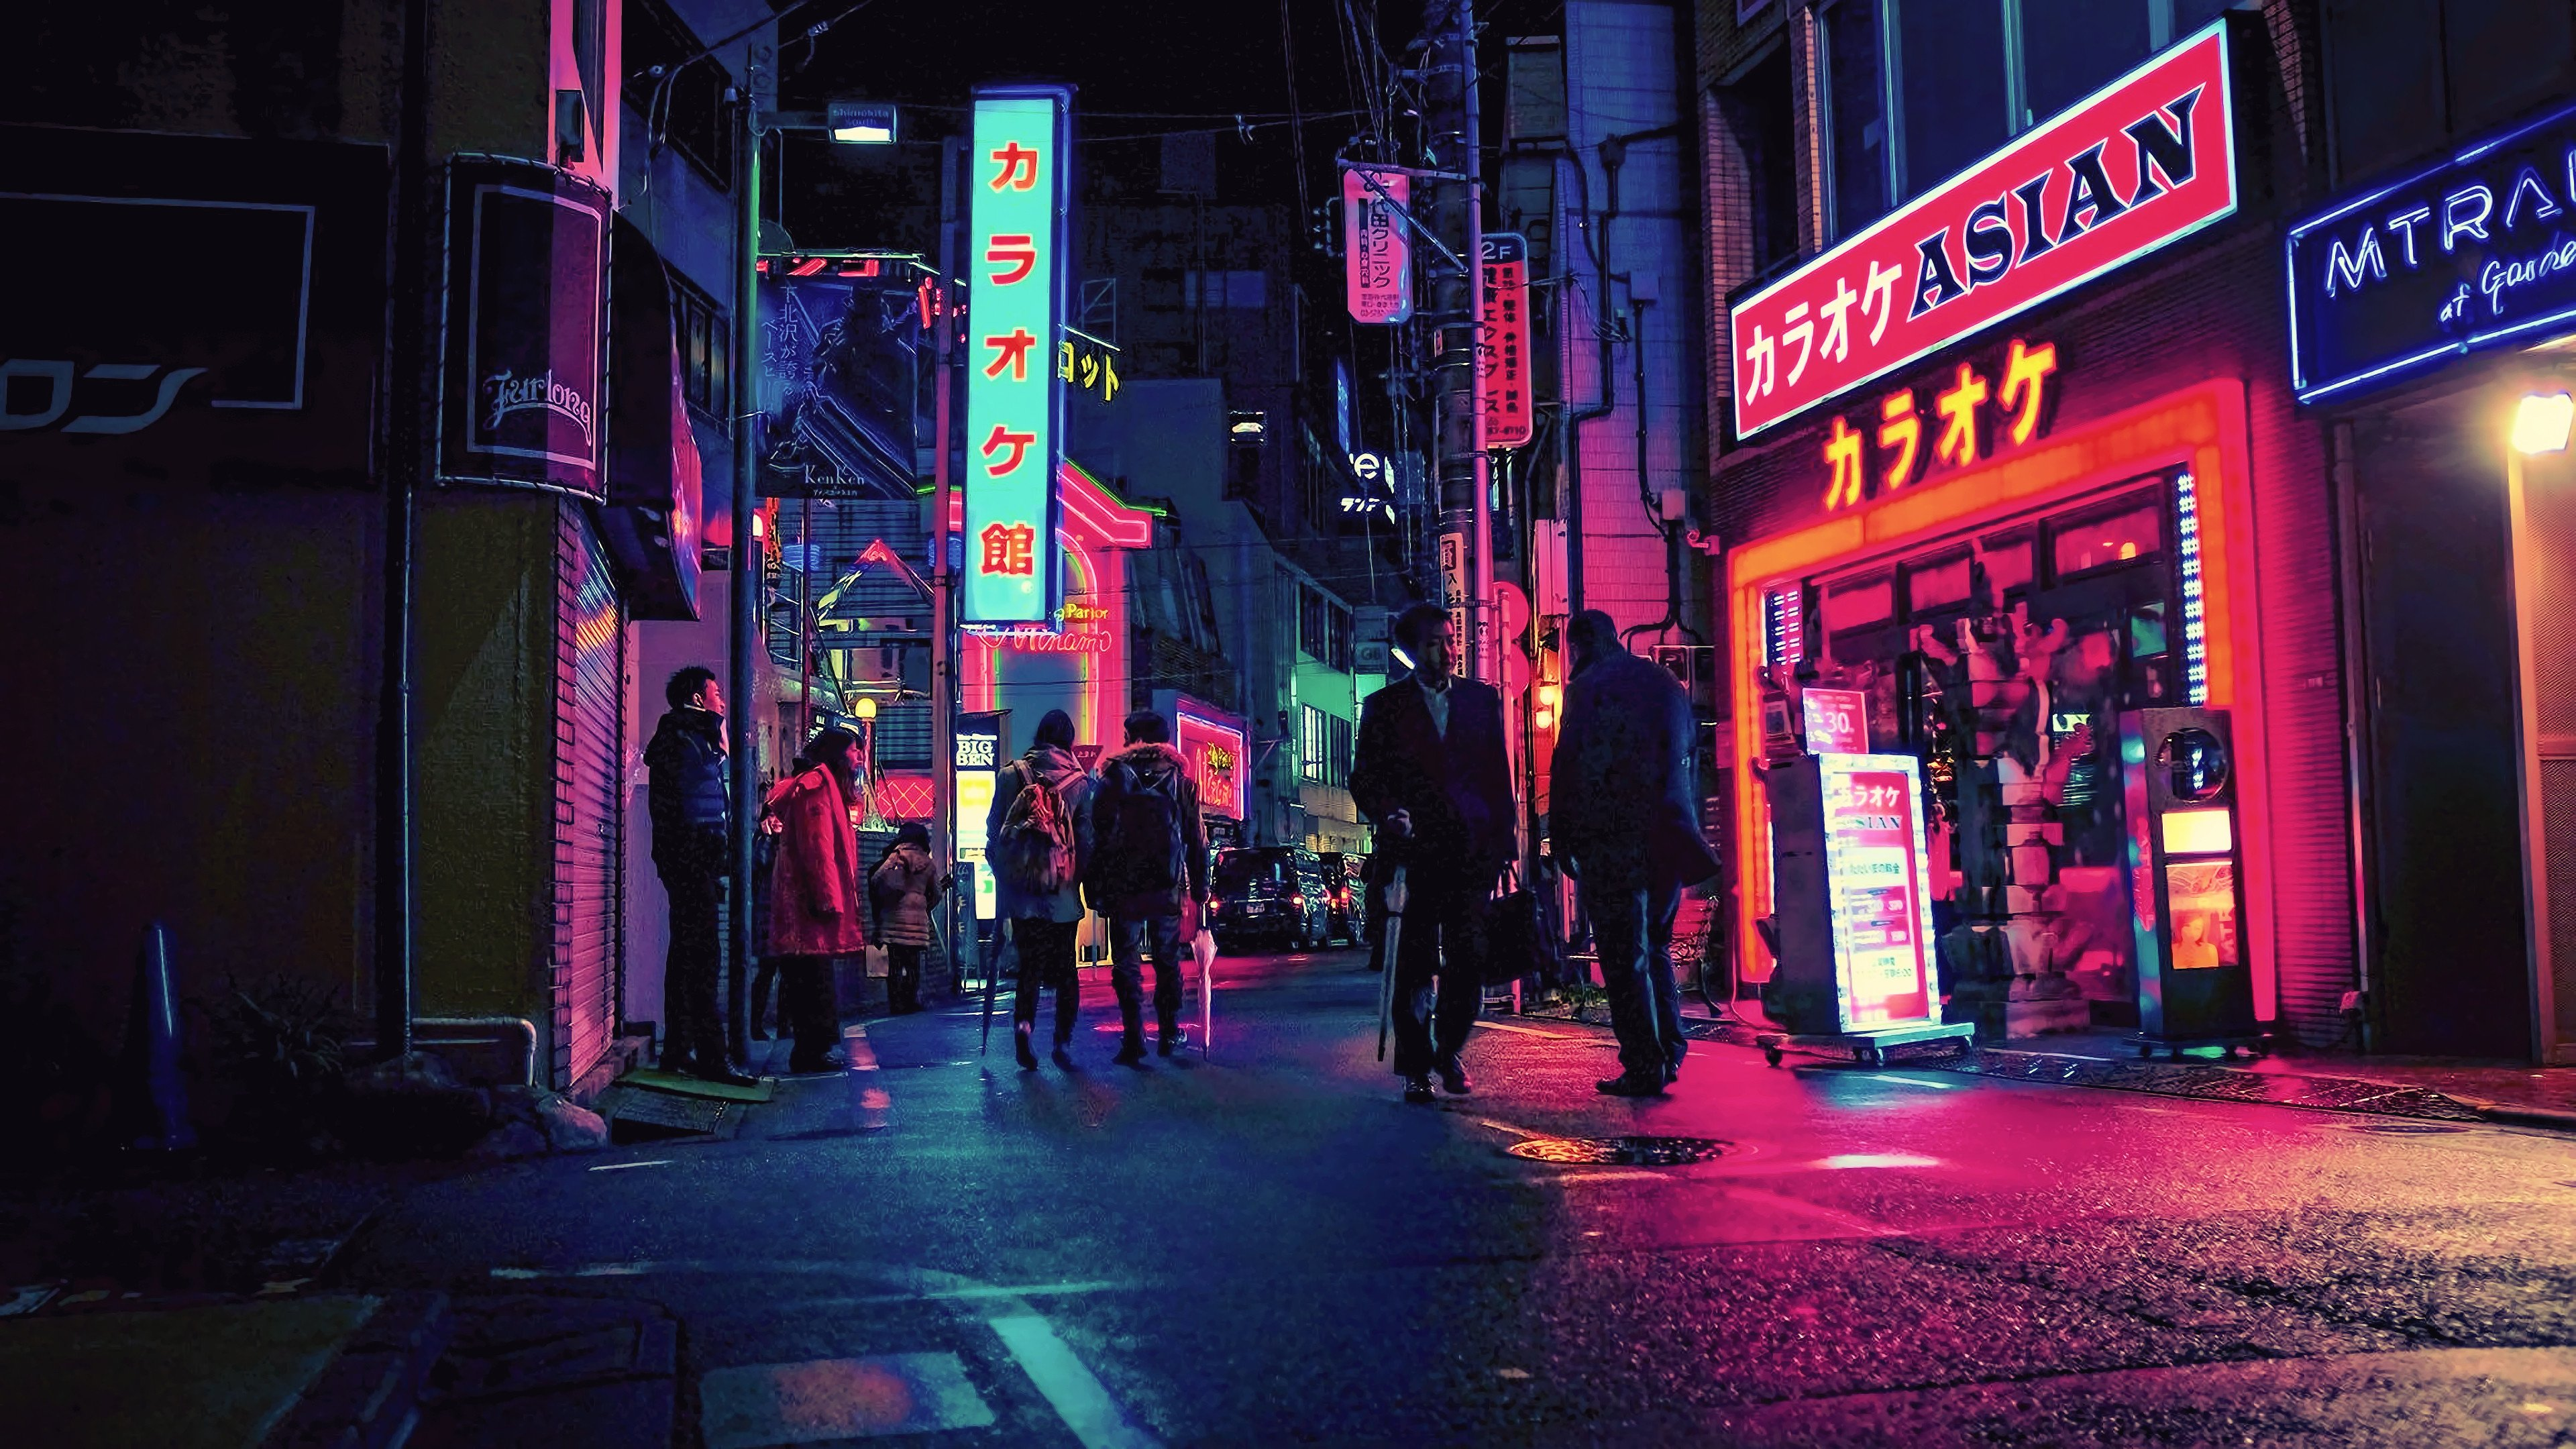 Neon City Wallpaper Posted By Ethan Mercado